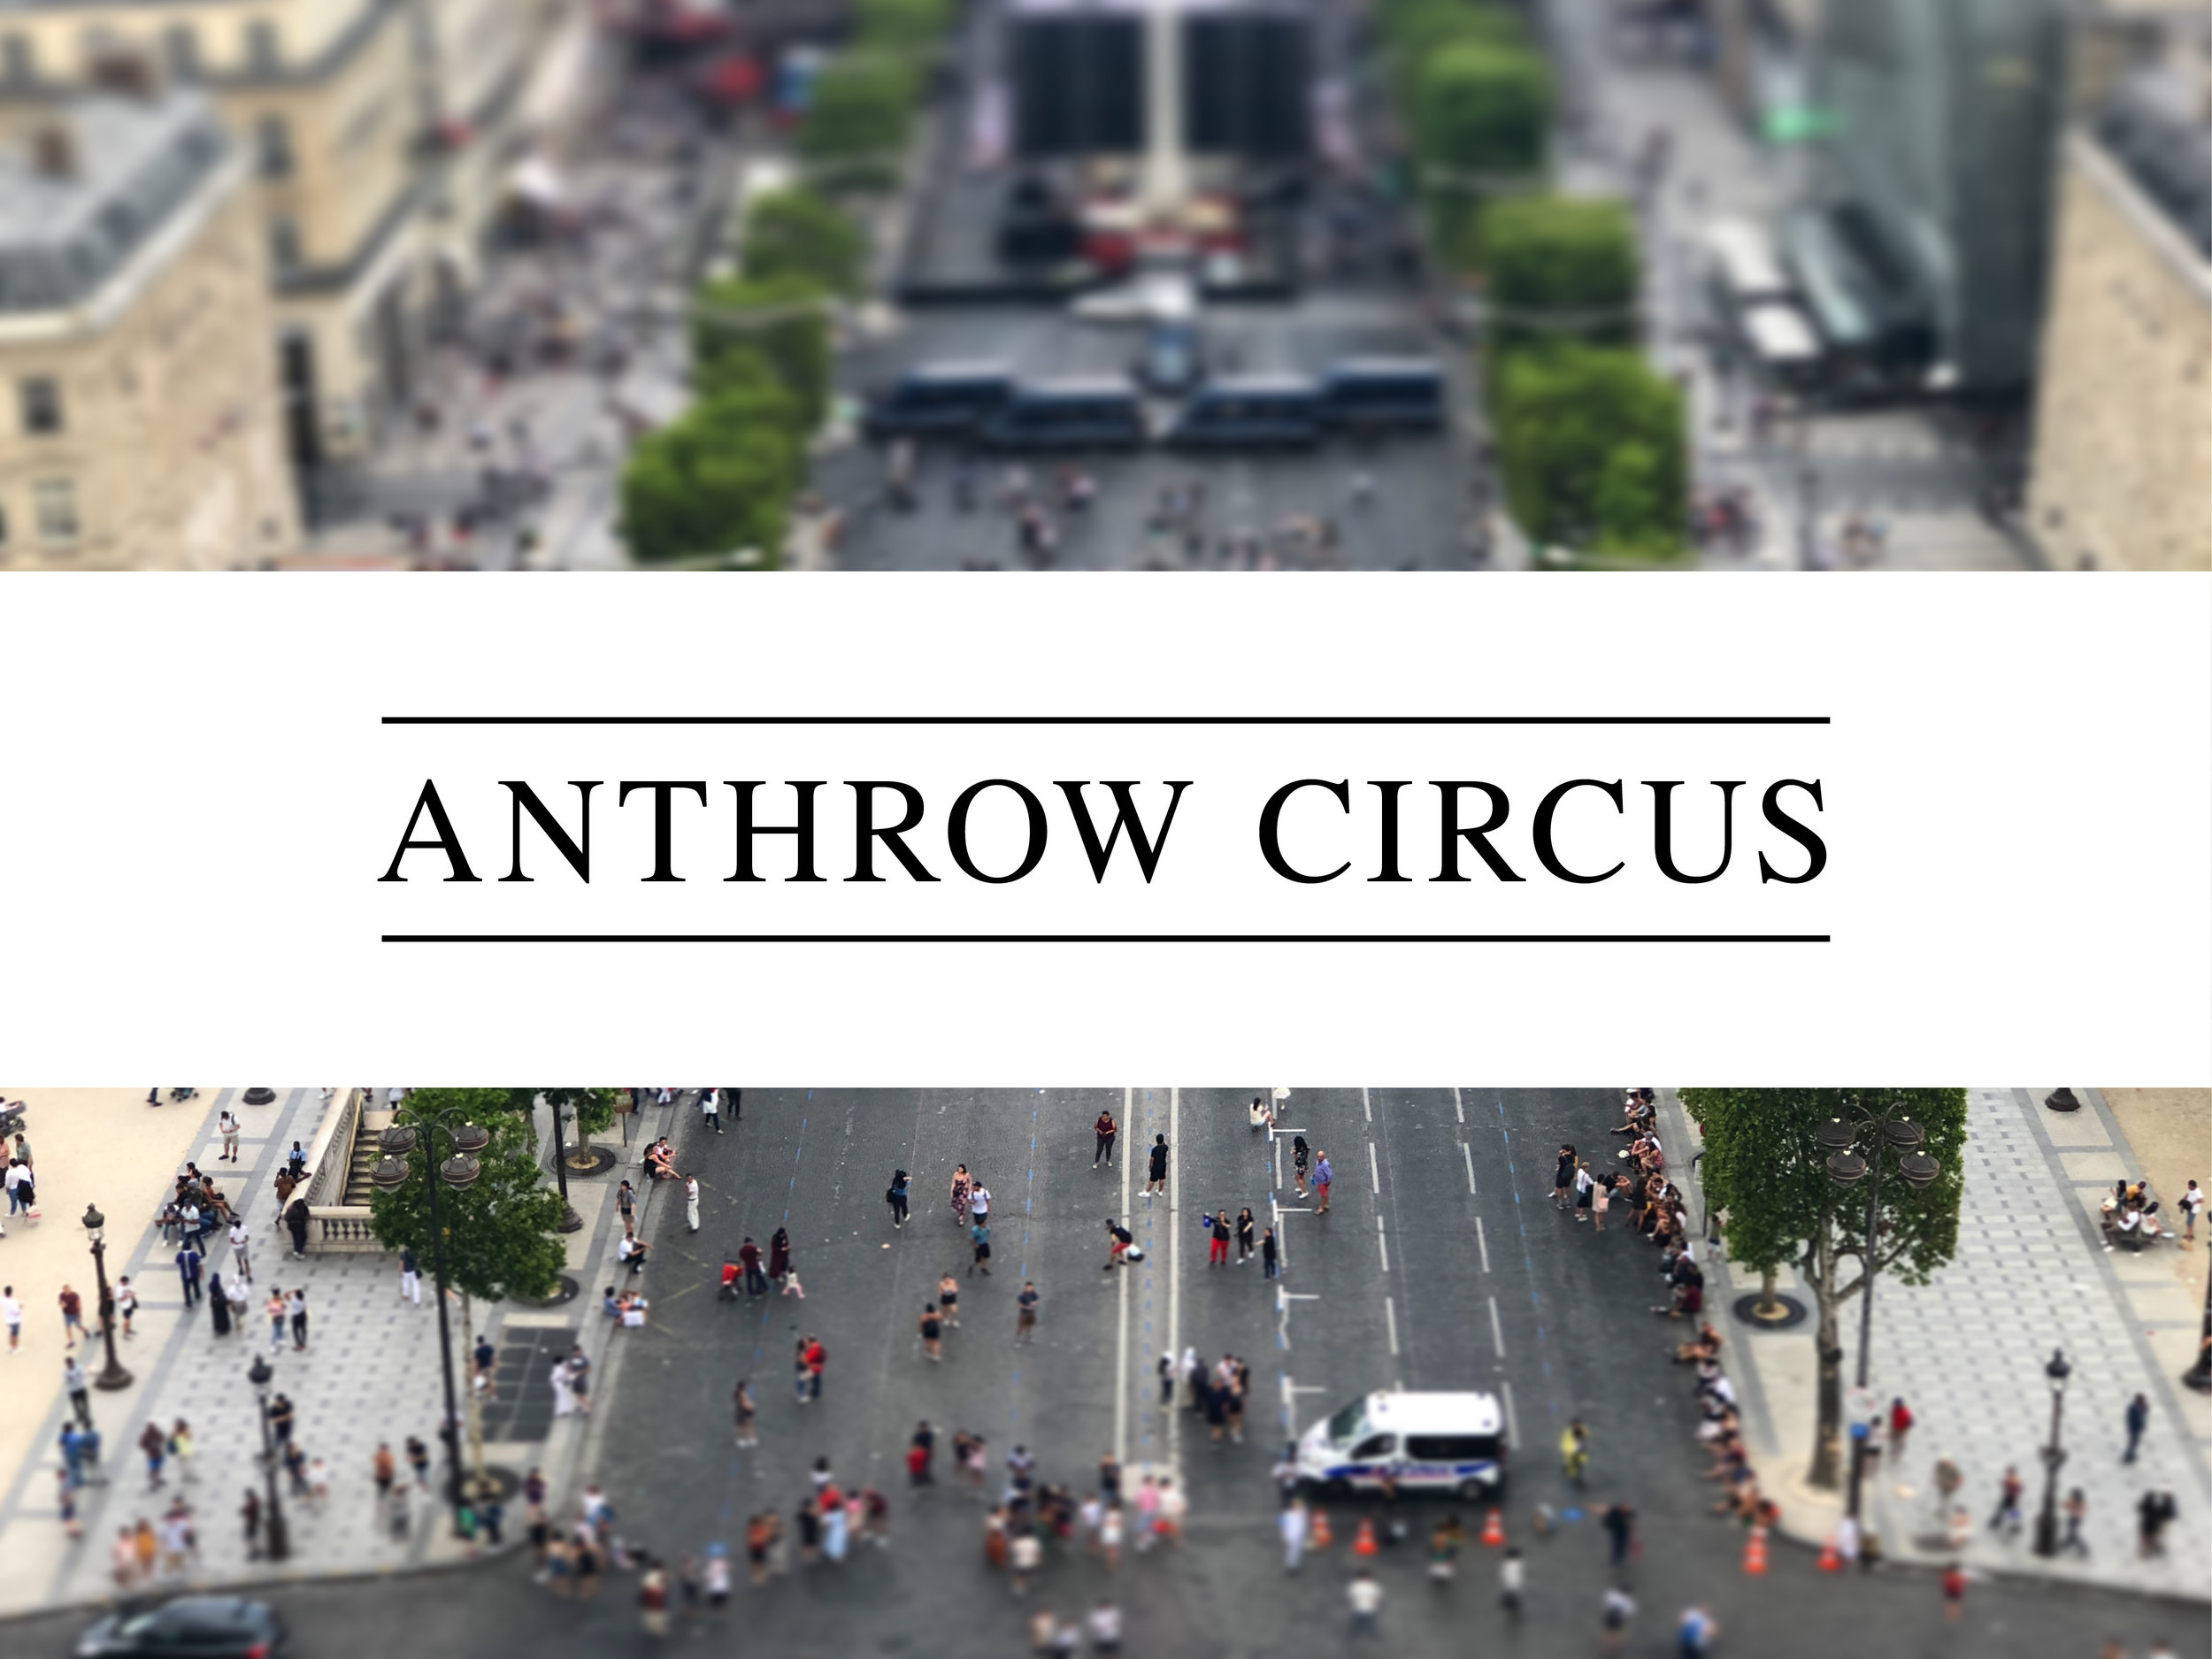 BREAKING NEWS! - The journal/magazine portion of Culture Keeper will be relaunching as Anthrow Circus this fall!! We're excited for the opportunity to expand what was started here at Culture Keeper! Watch our Facebook page and the new Anthrow Circus site for all the details.You'll find our next new stories at Anthrow Circus in a couple months. Until then you can enjoy our archives here. The stories you've come to love will also be available on the new site once it launches.Those of you who have known Culture Keeper as Jonathan Grant's collaborative project will be glad to know that Culture Keeper continues. This one portion of Culture Keeper's work has taken on a life of its own and is thus spinning off. Now one great brand has become two, giving you more great things to enjoy!